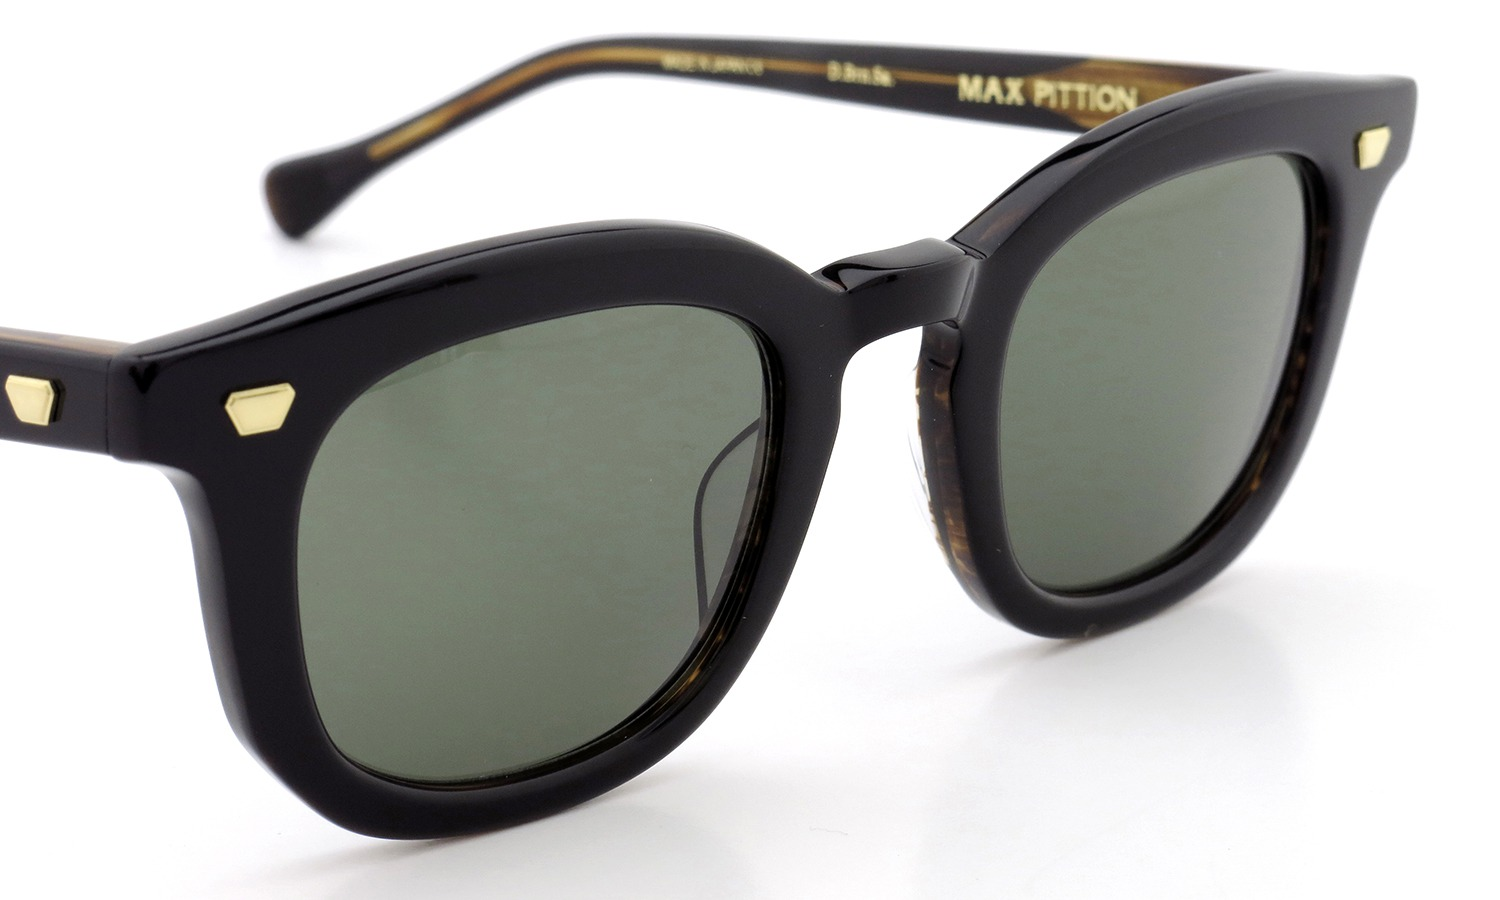 MAX PITTION サングラス [MAP COLLECTION] Livingston 47size D.Brn.Sa. Lense:G15